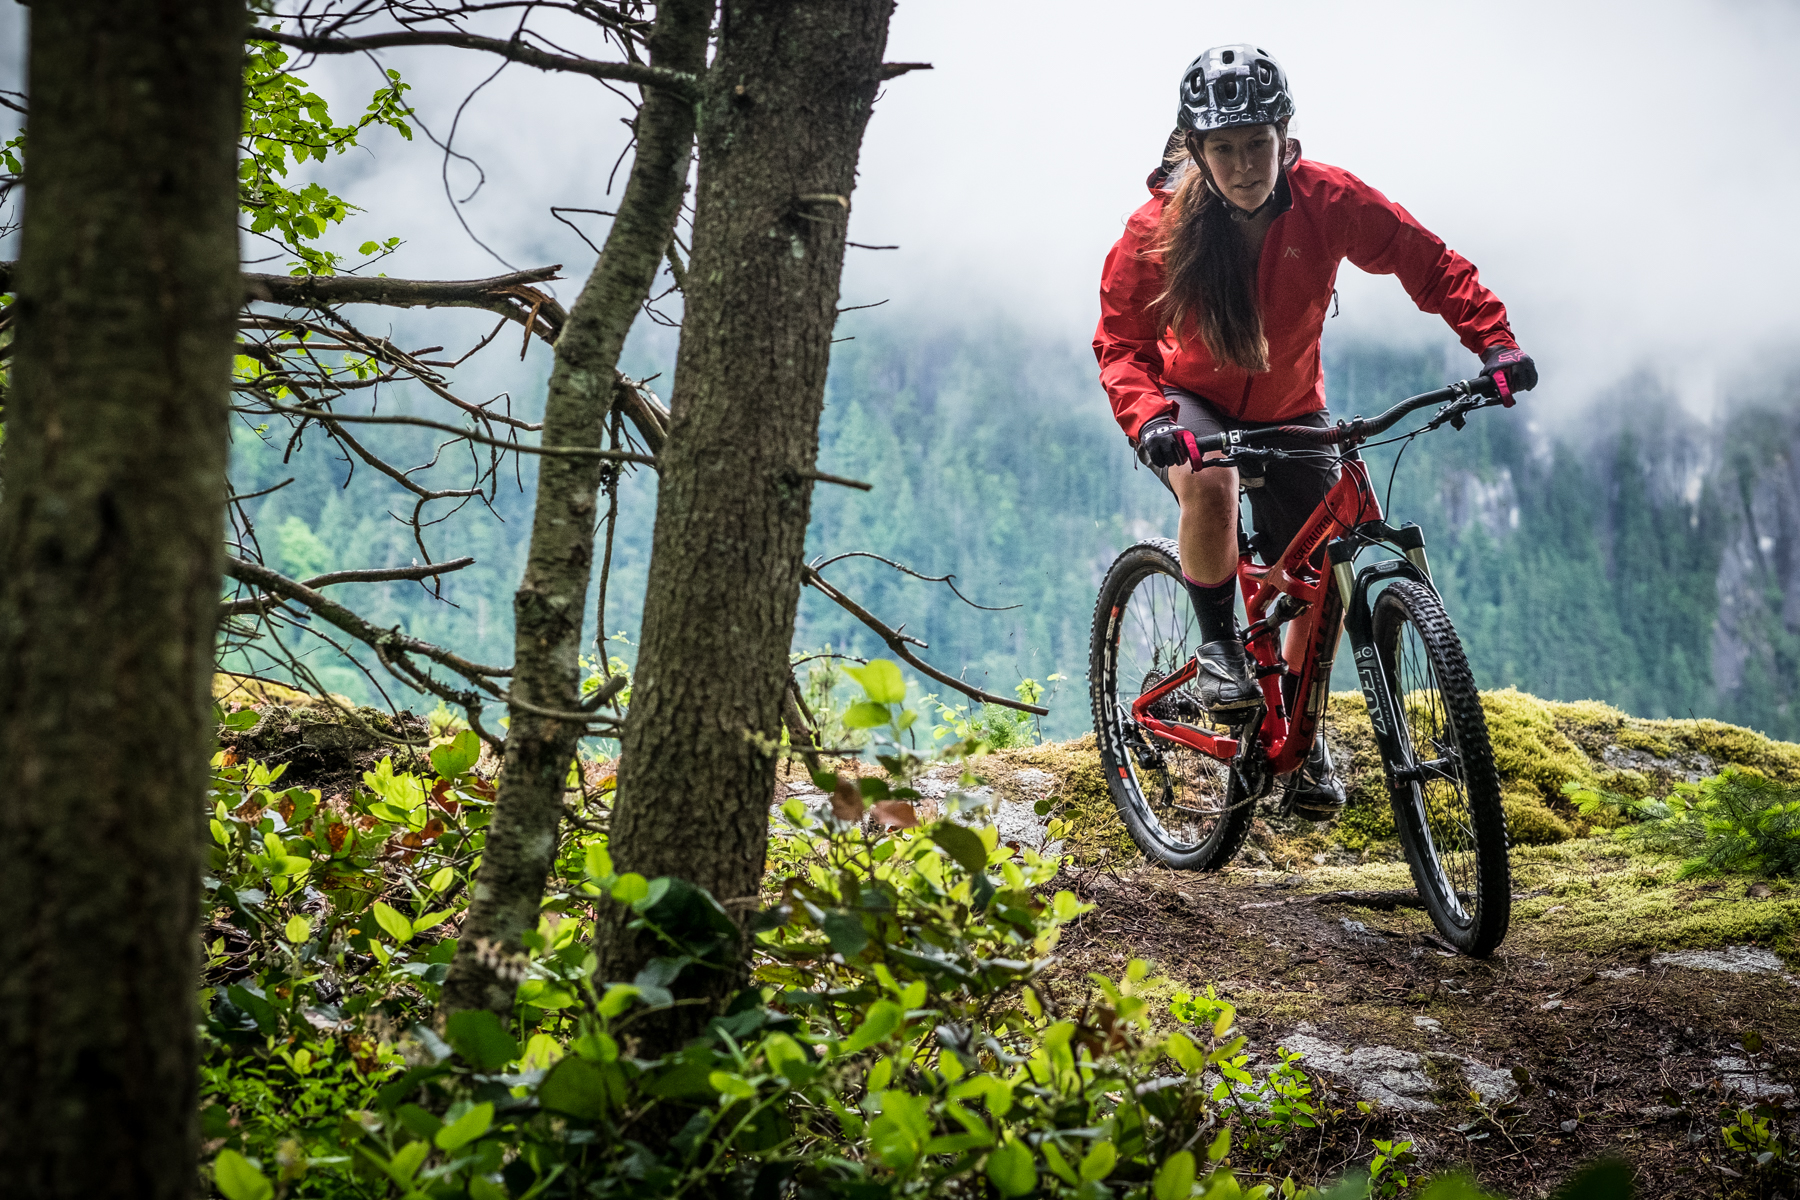 Lululemon Athletica has invested in 7mesh Industries, a startup that makes cycling apparel.